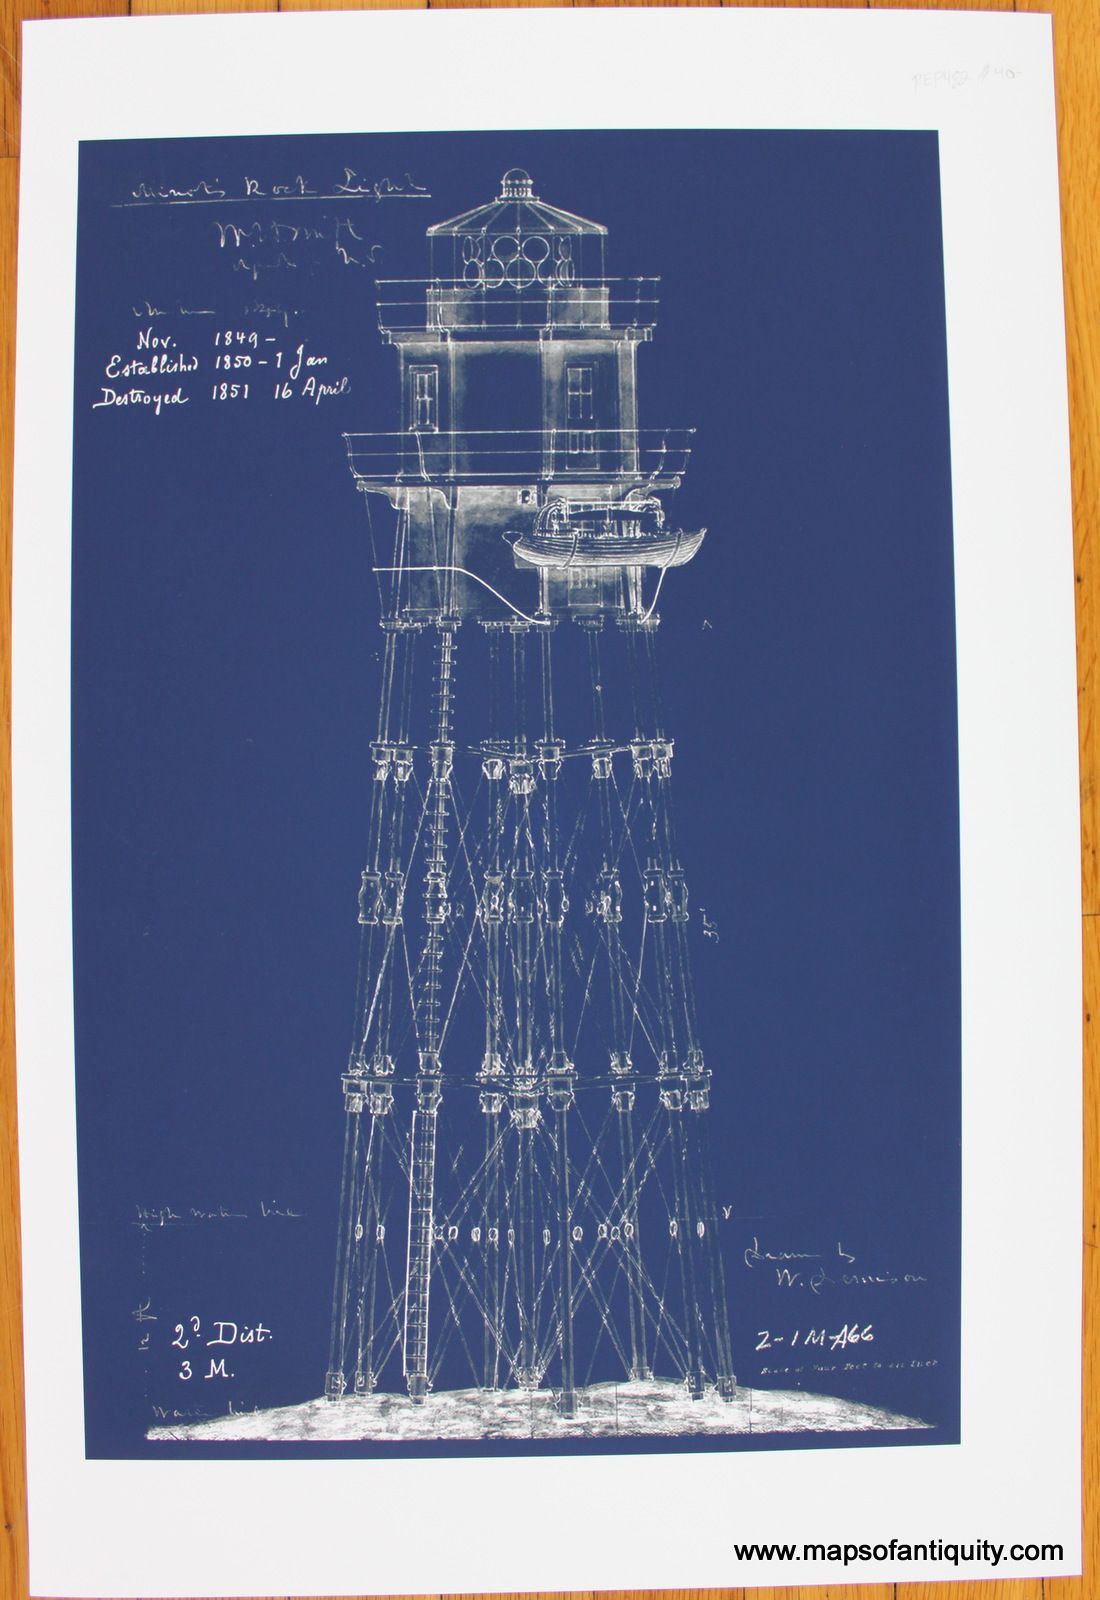 A great fathers day gift blueprint of minots rock light minots blueprint of minots rock light minots ledge light malvernweather Choice Image